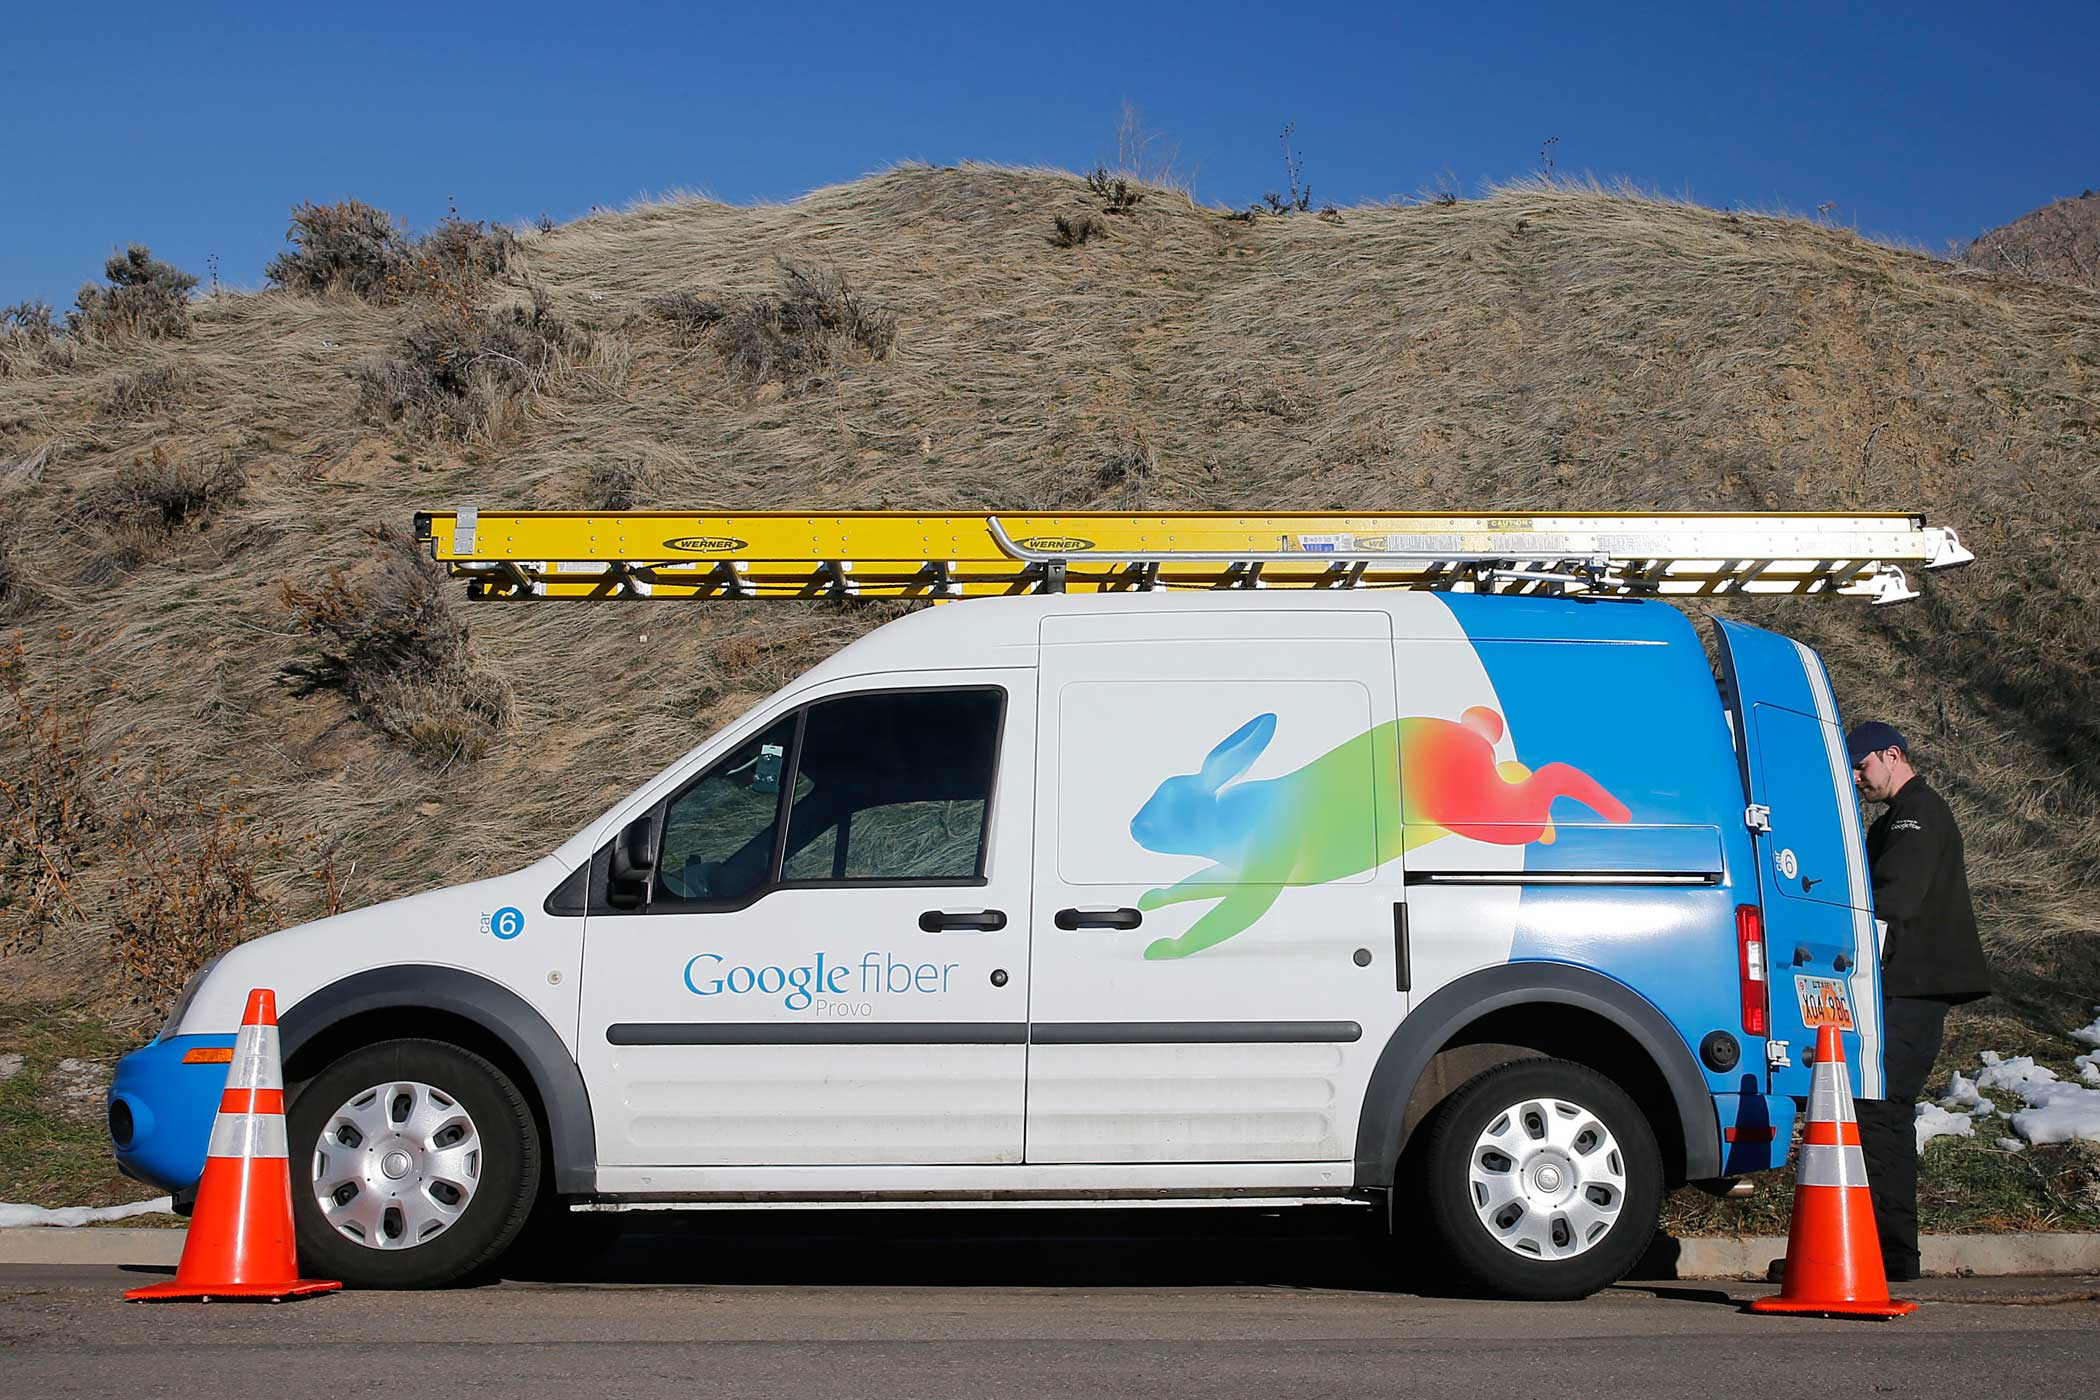 <b>Fiber</b>: Google's high-speed broadband Internet service is now available in three cities, with plans to expand to six more in the coming months.